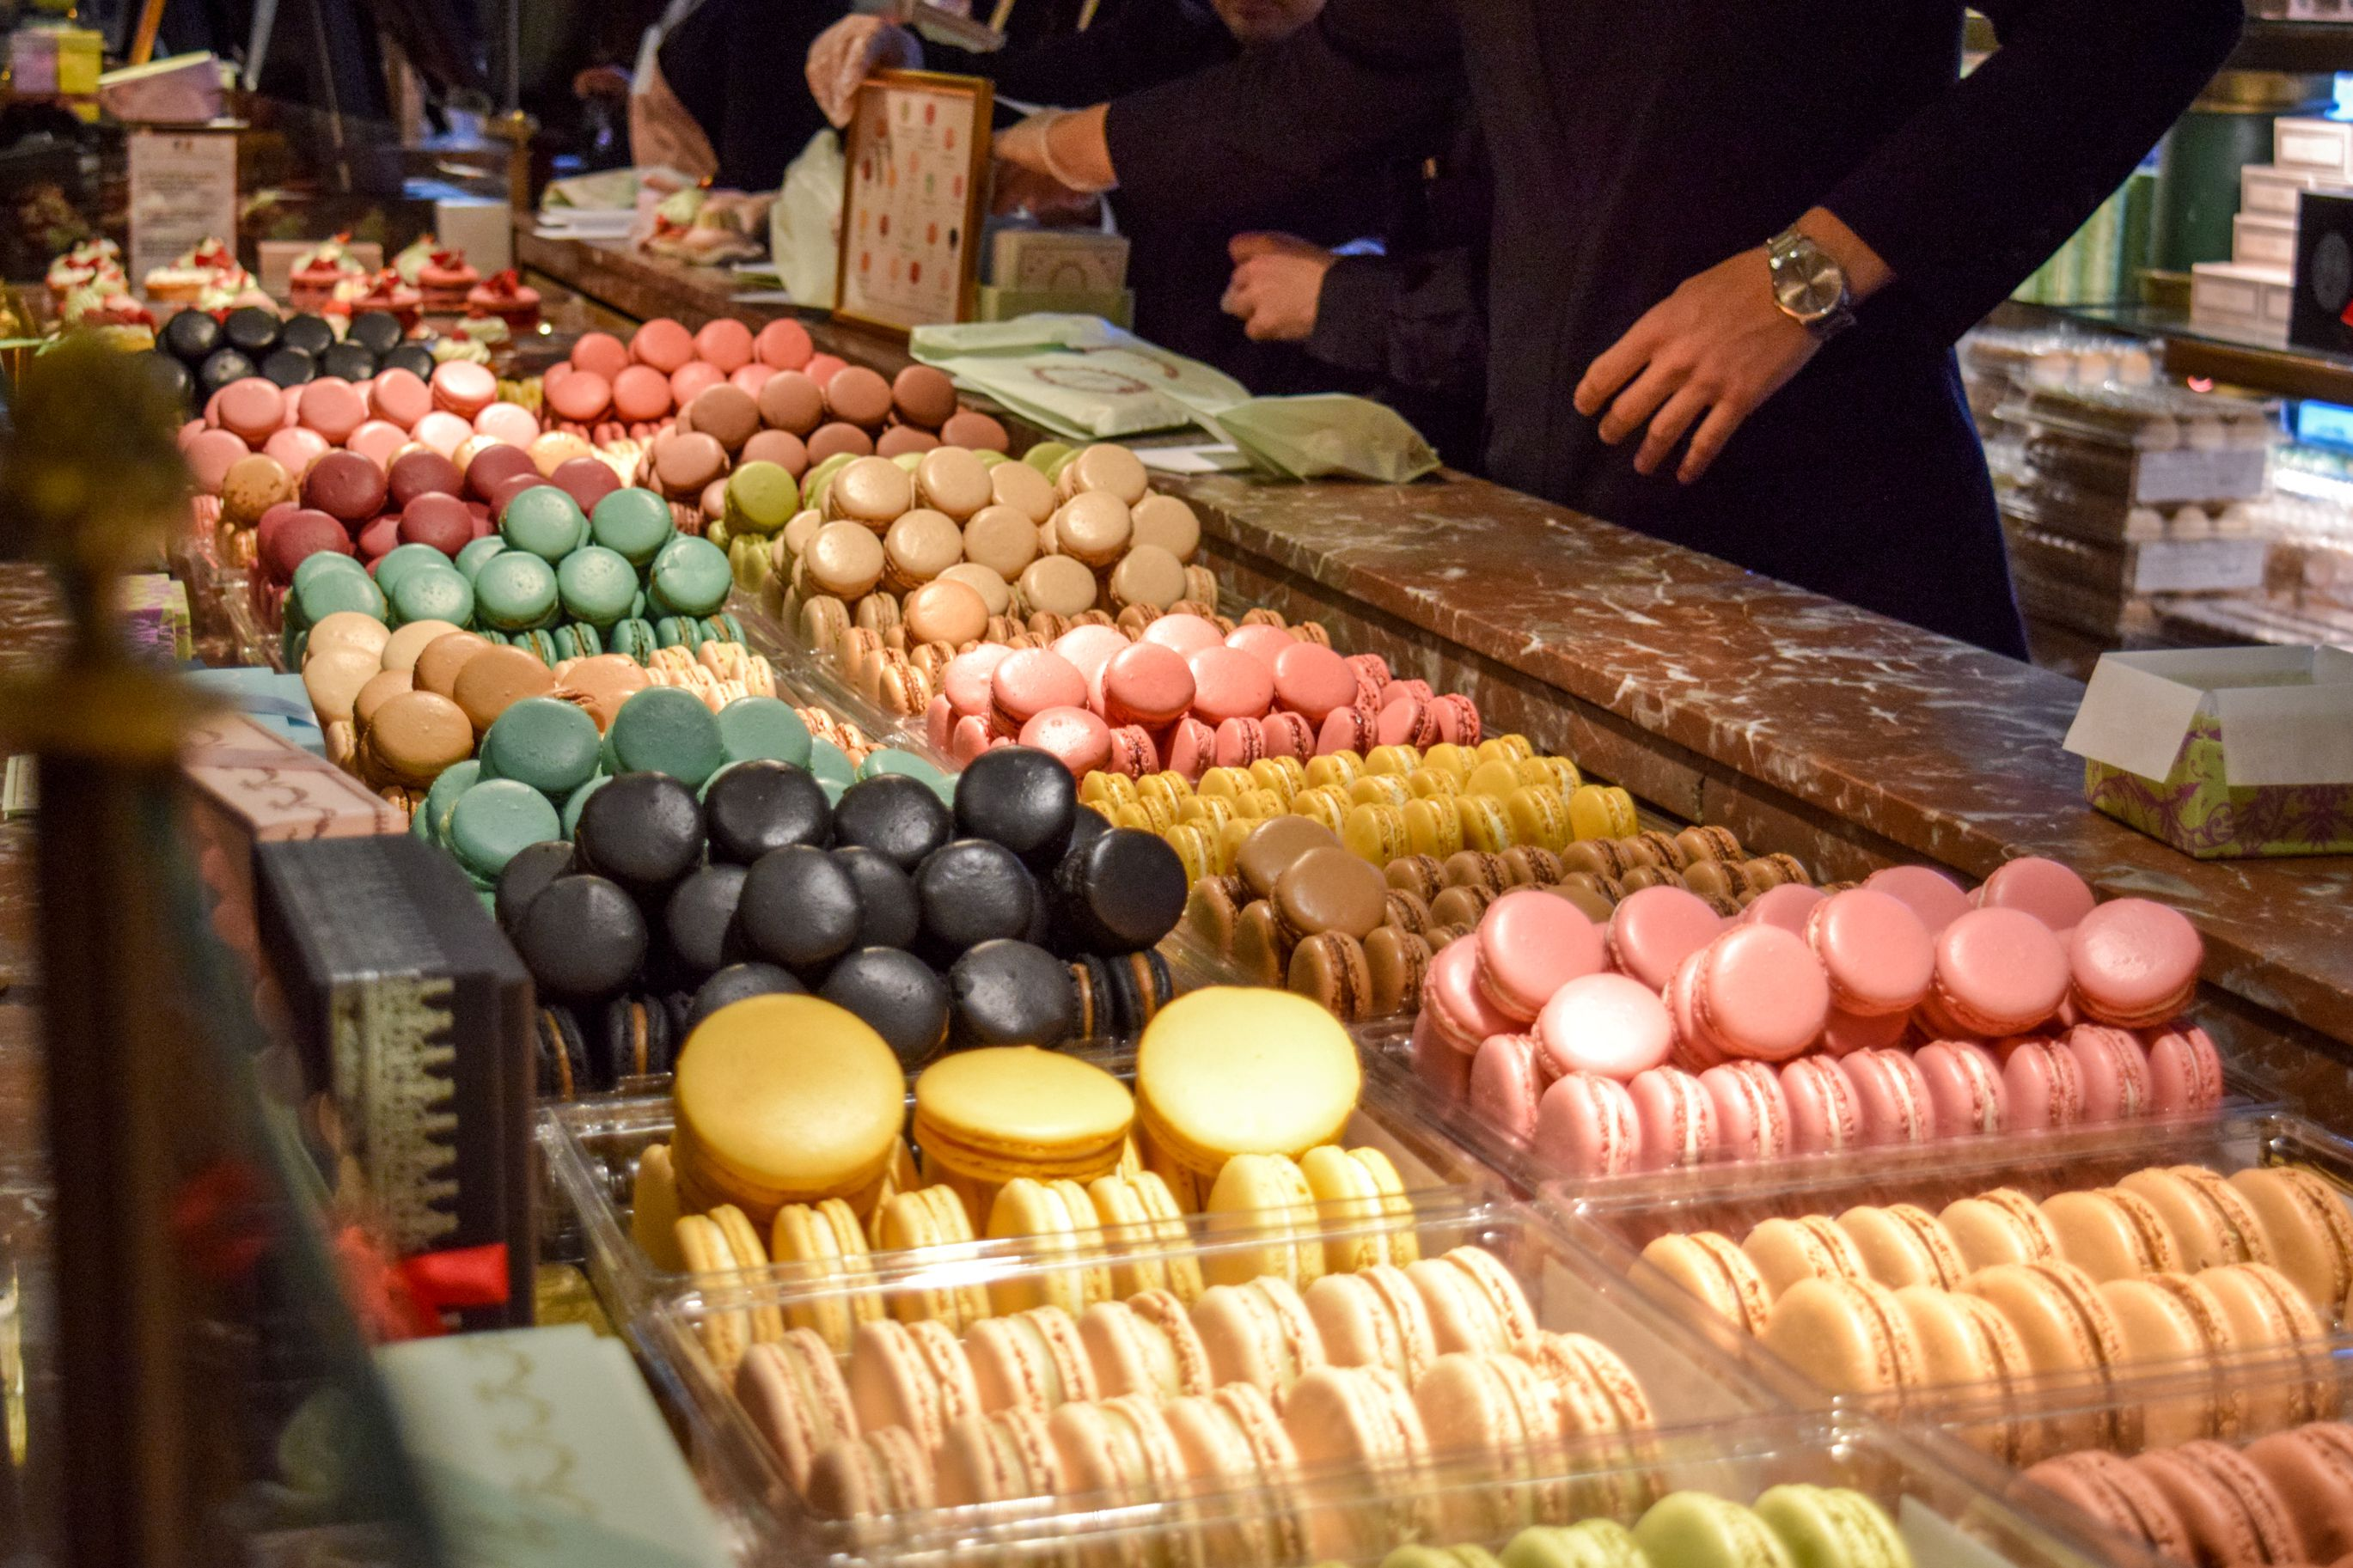 The Best Macarons in Paris: Where to Find Them